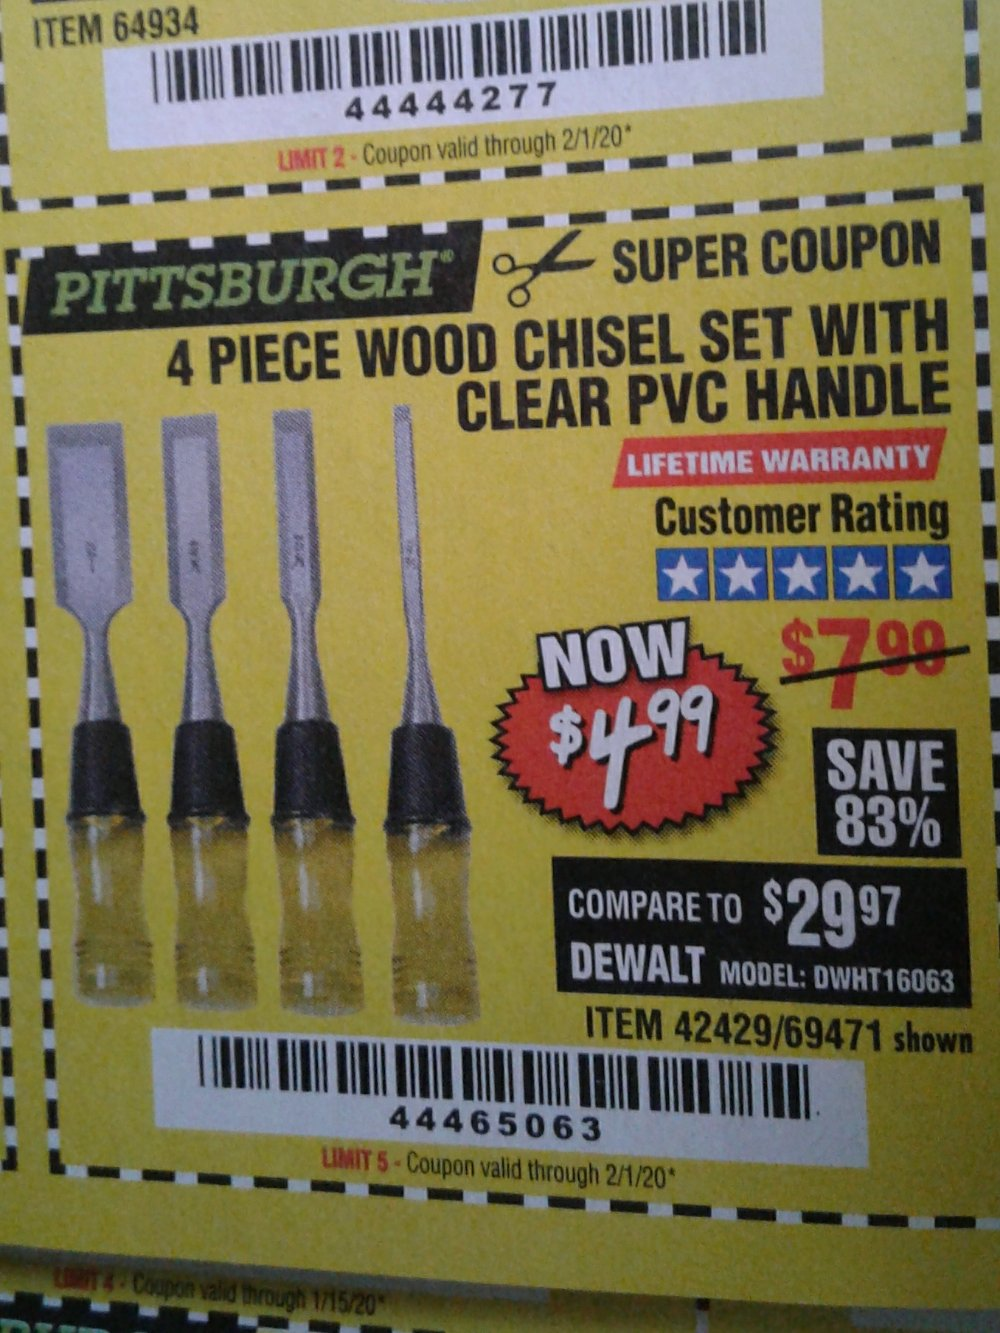 Harbor Freight Coupon, HF Coupons - 4 Piece Wood Chisel Set